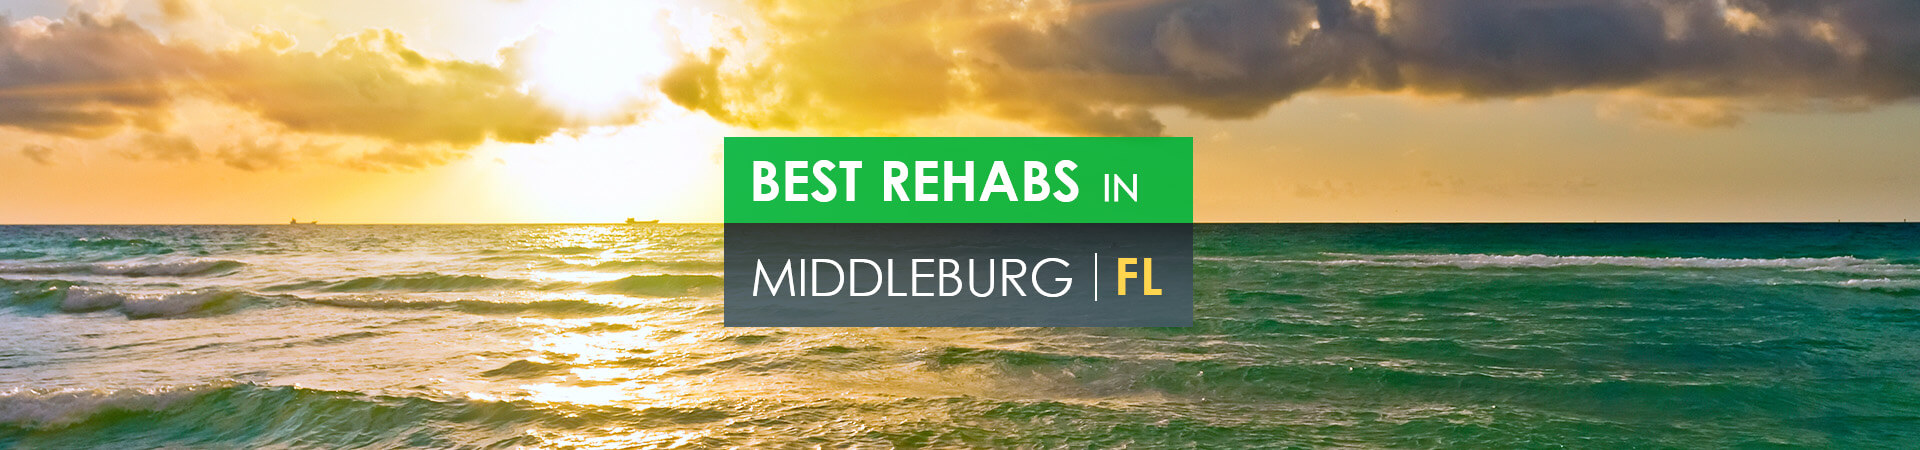 Best rehabs in Middleburg, FL